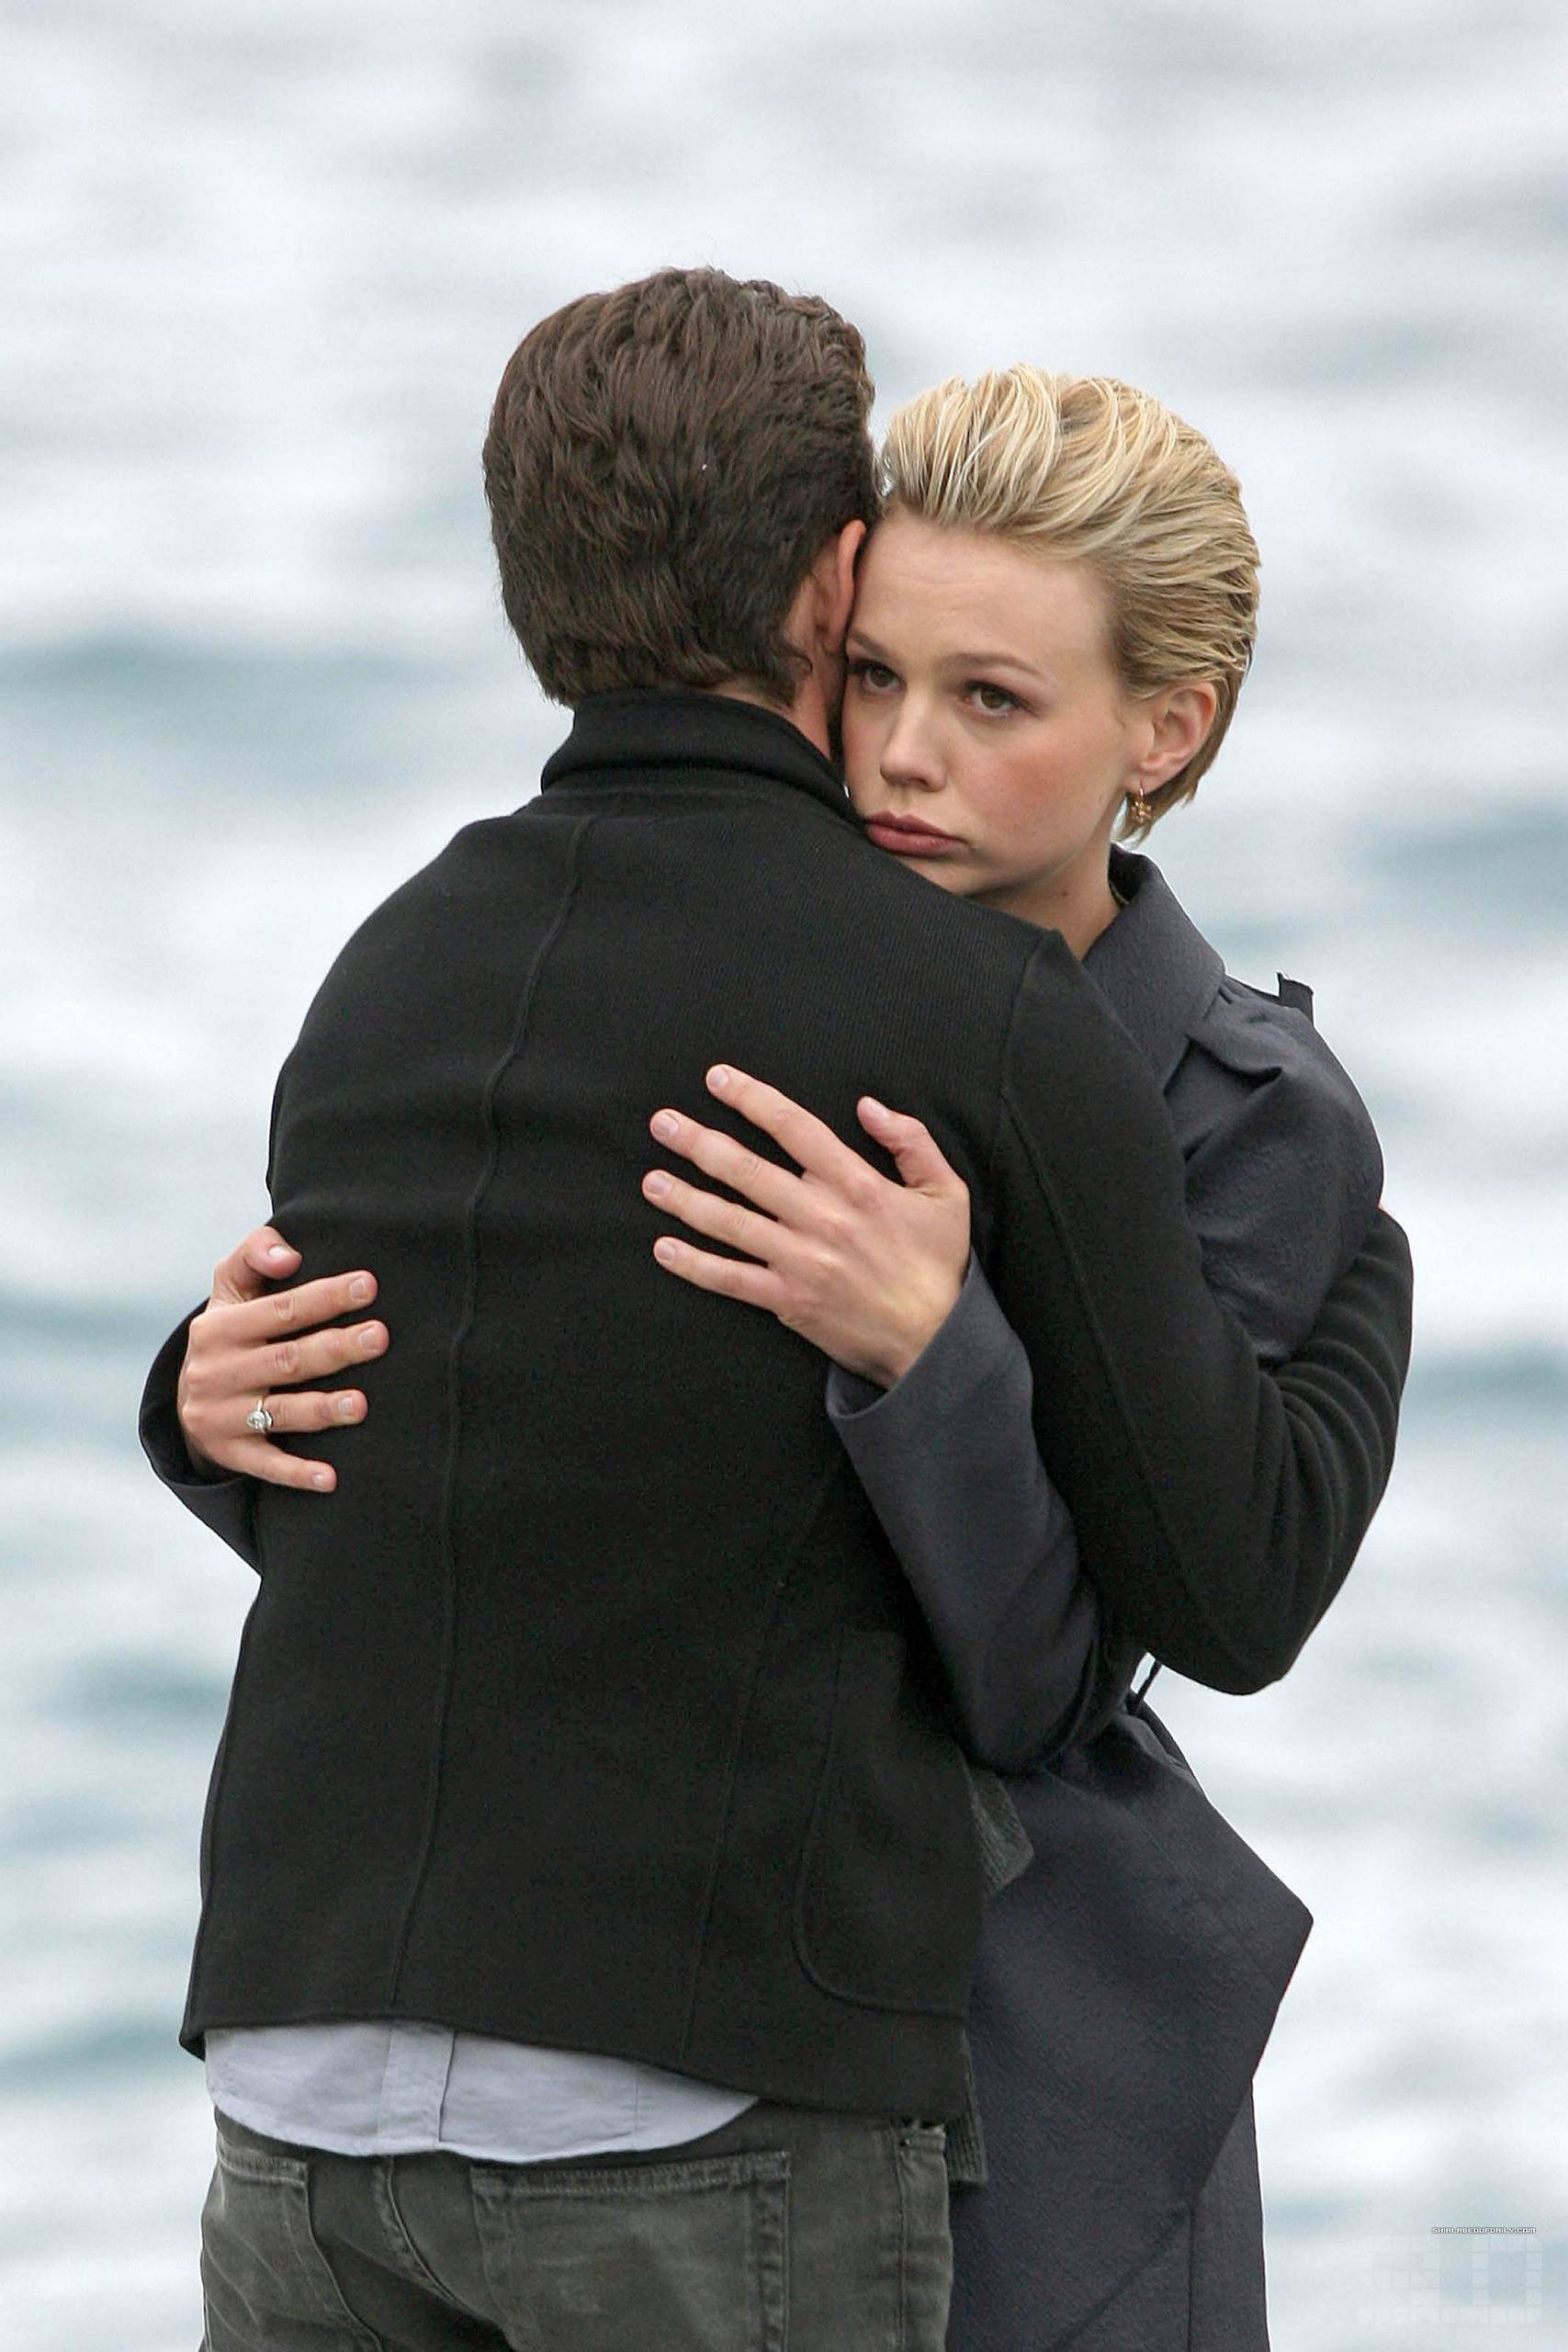 Wallpaper Download Cute Lovers Shia Labeouf And Carey Mulligan Images In Venice May 14